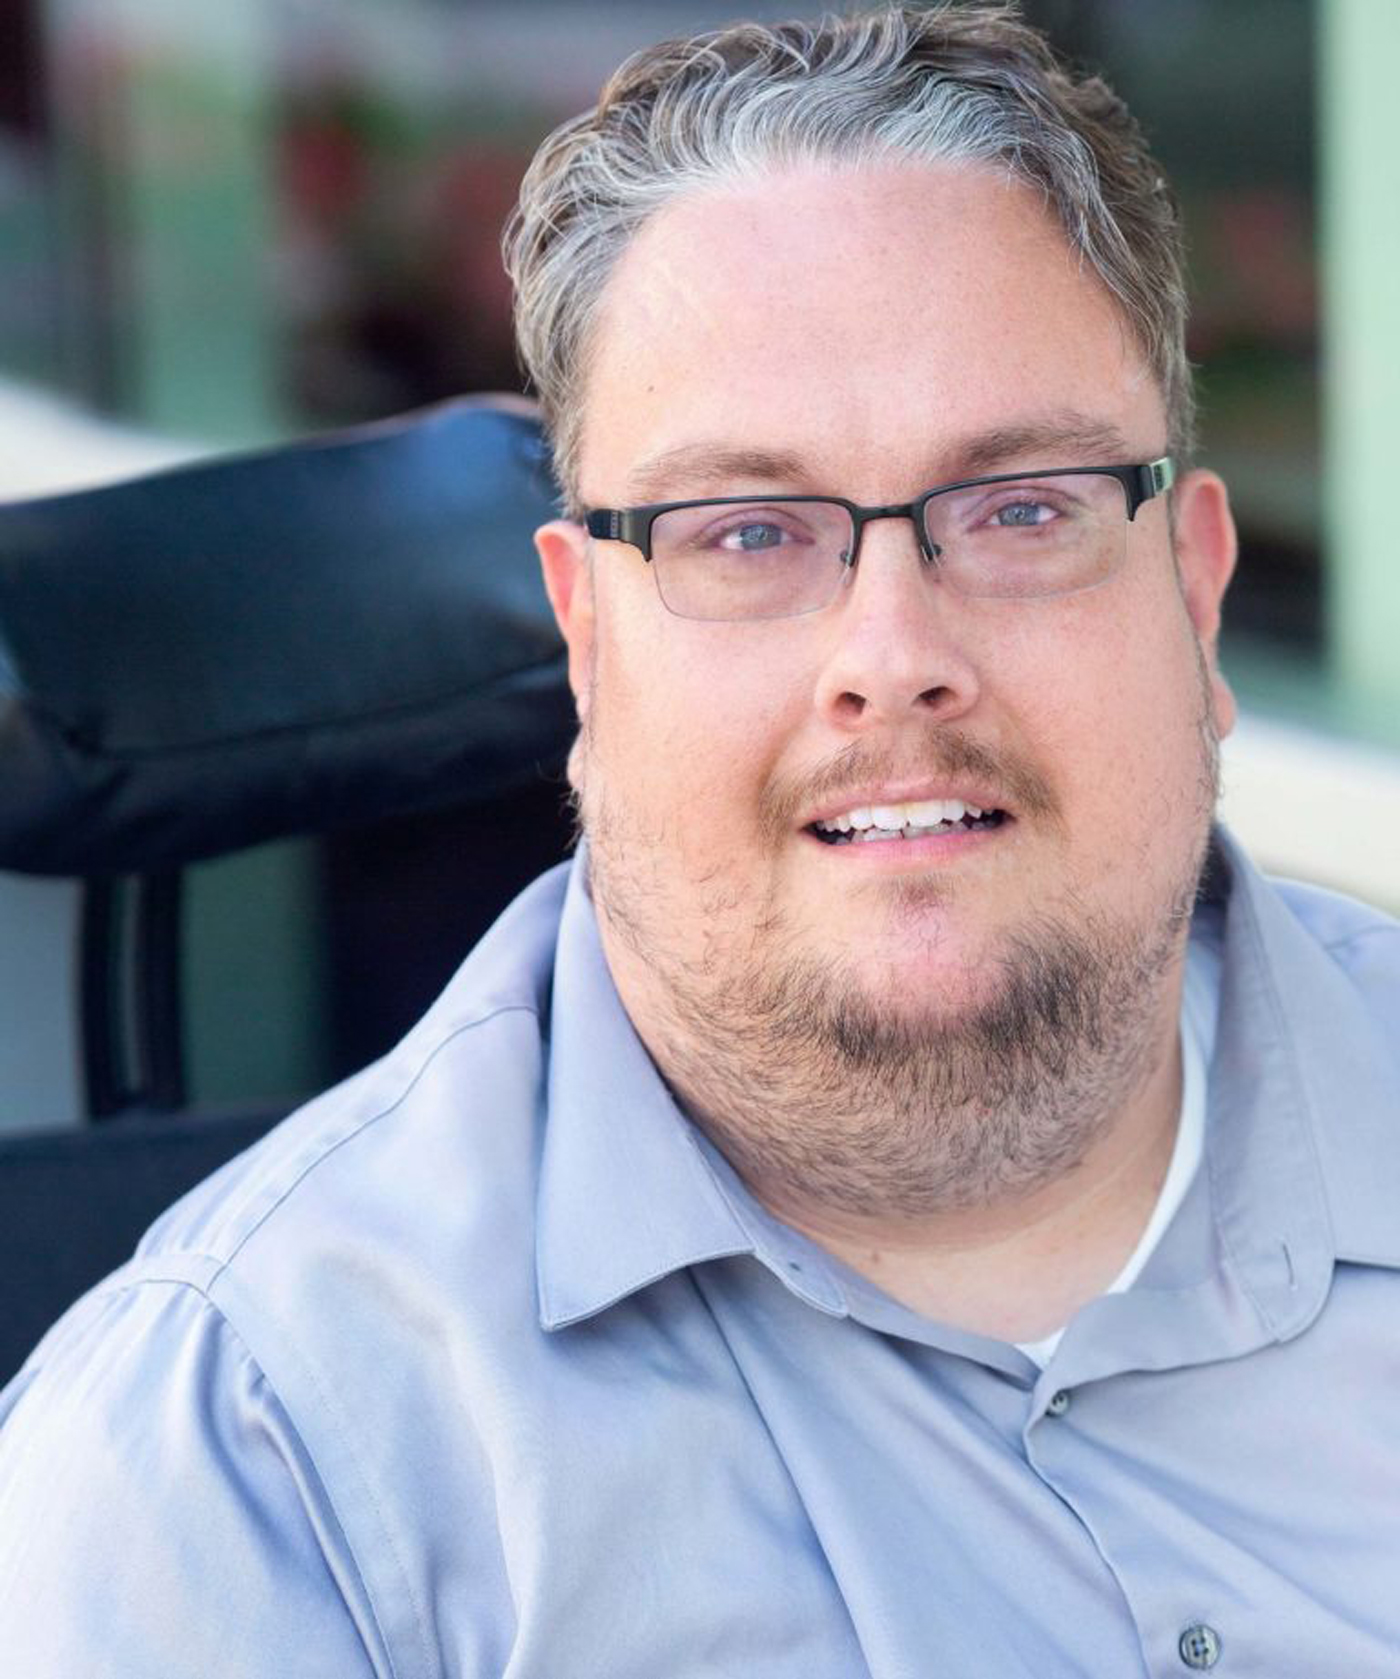 """Adam Ballard of the disability rights group Access Living: """"I have a huge concern that, once the pandemic is over, it's going to be really hard to find a cab"""" through the Taxi Access Program. It provides disabled people with government-subsidized taxi service for just $3 a ride."""